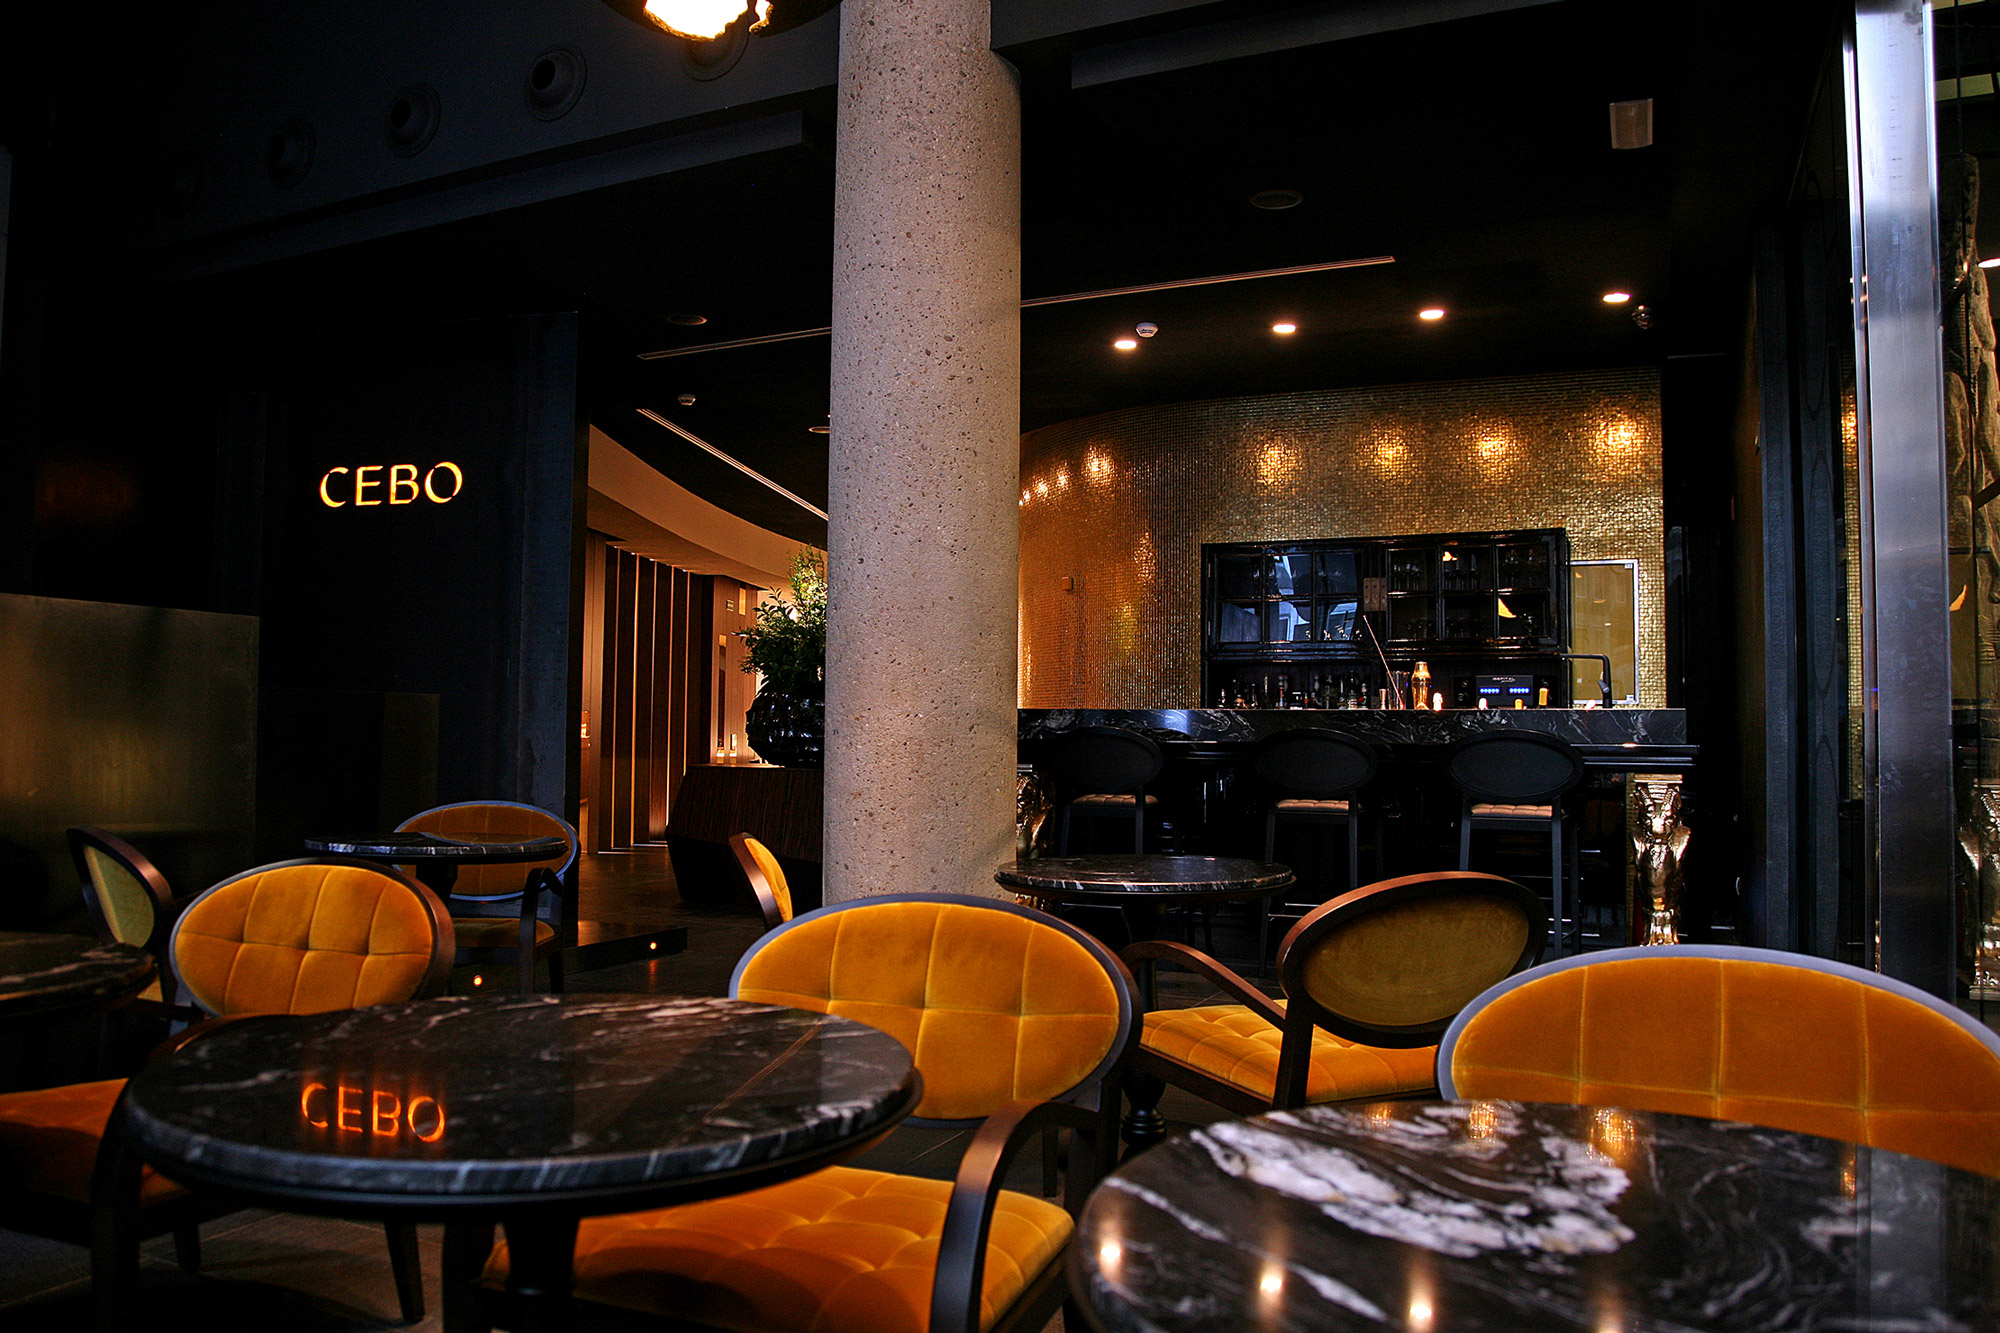 CEBO Restaurant Madrid